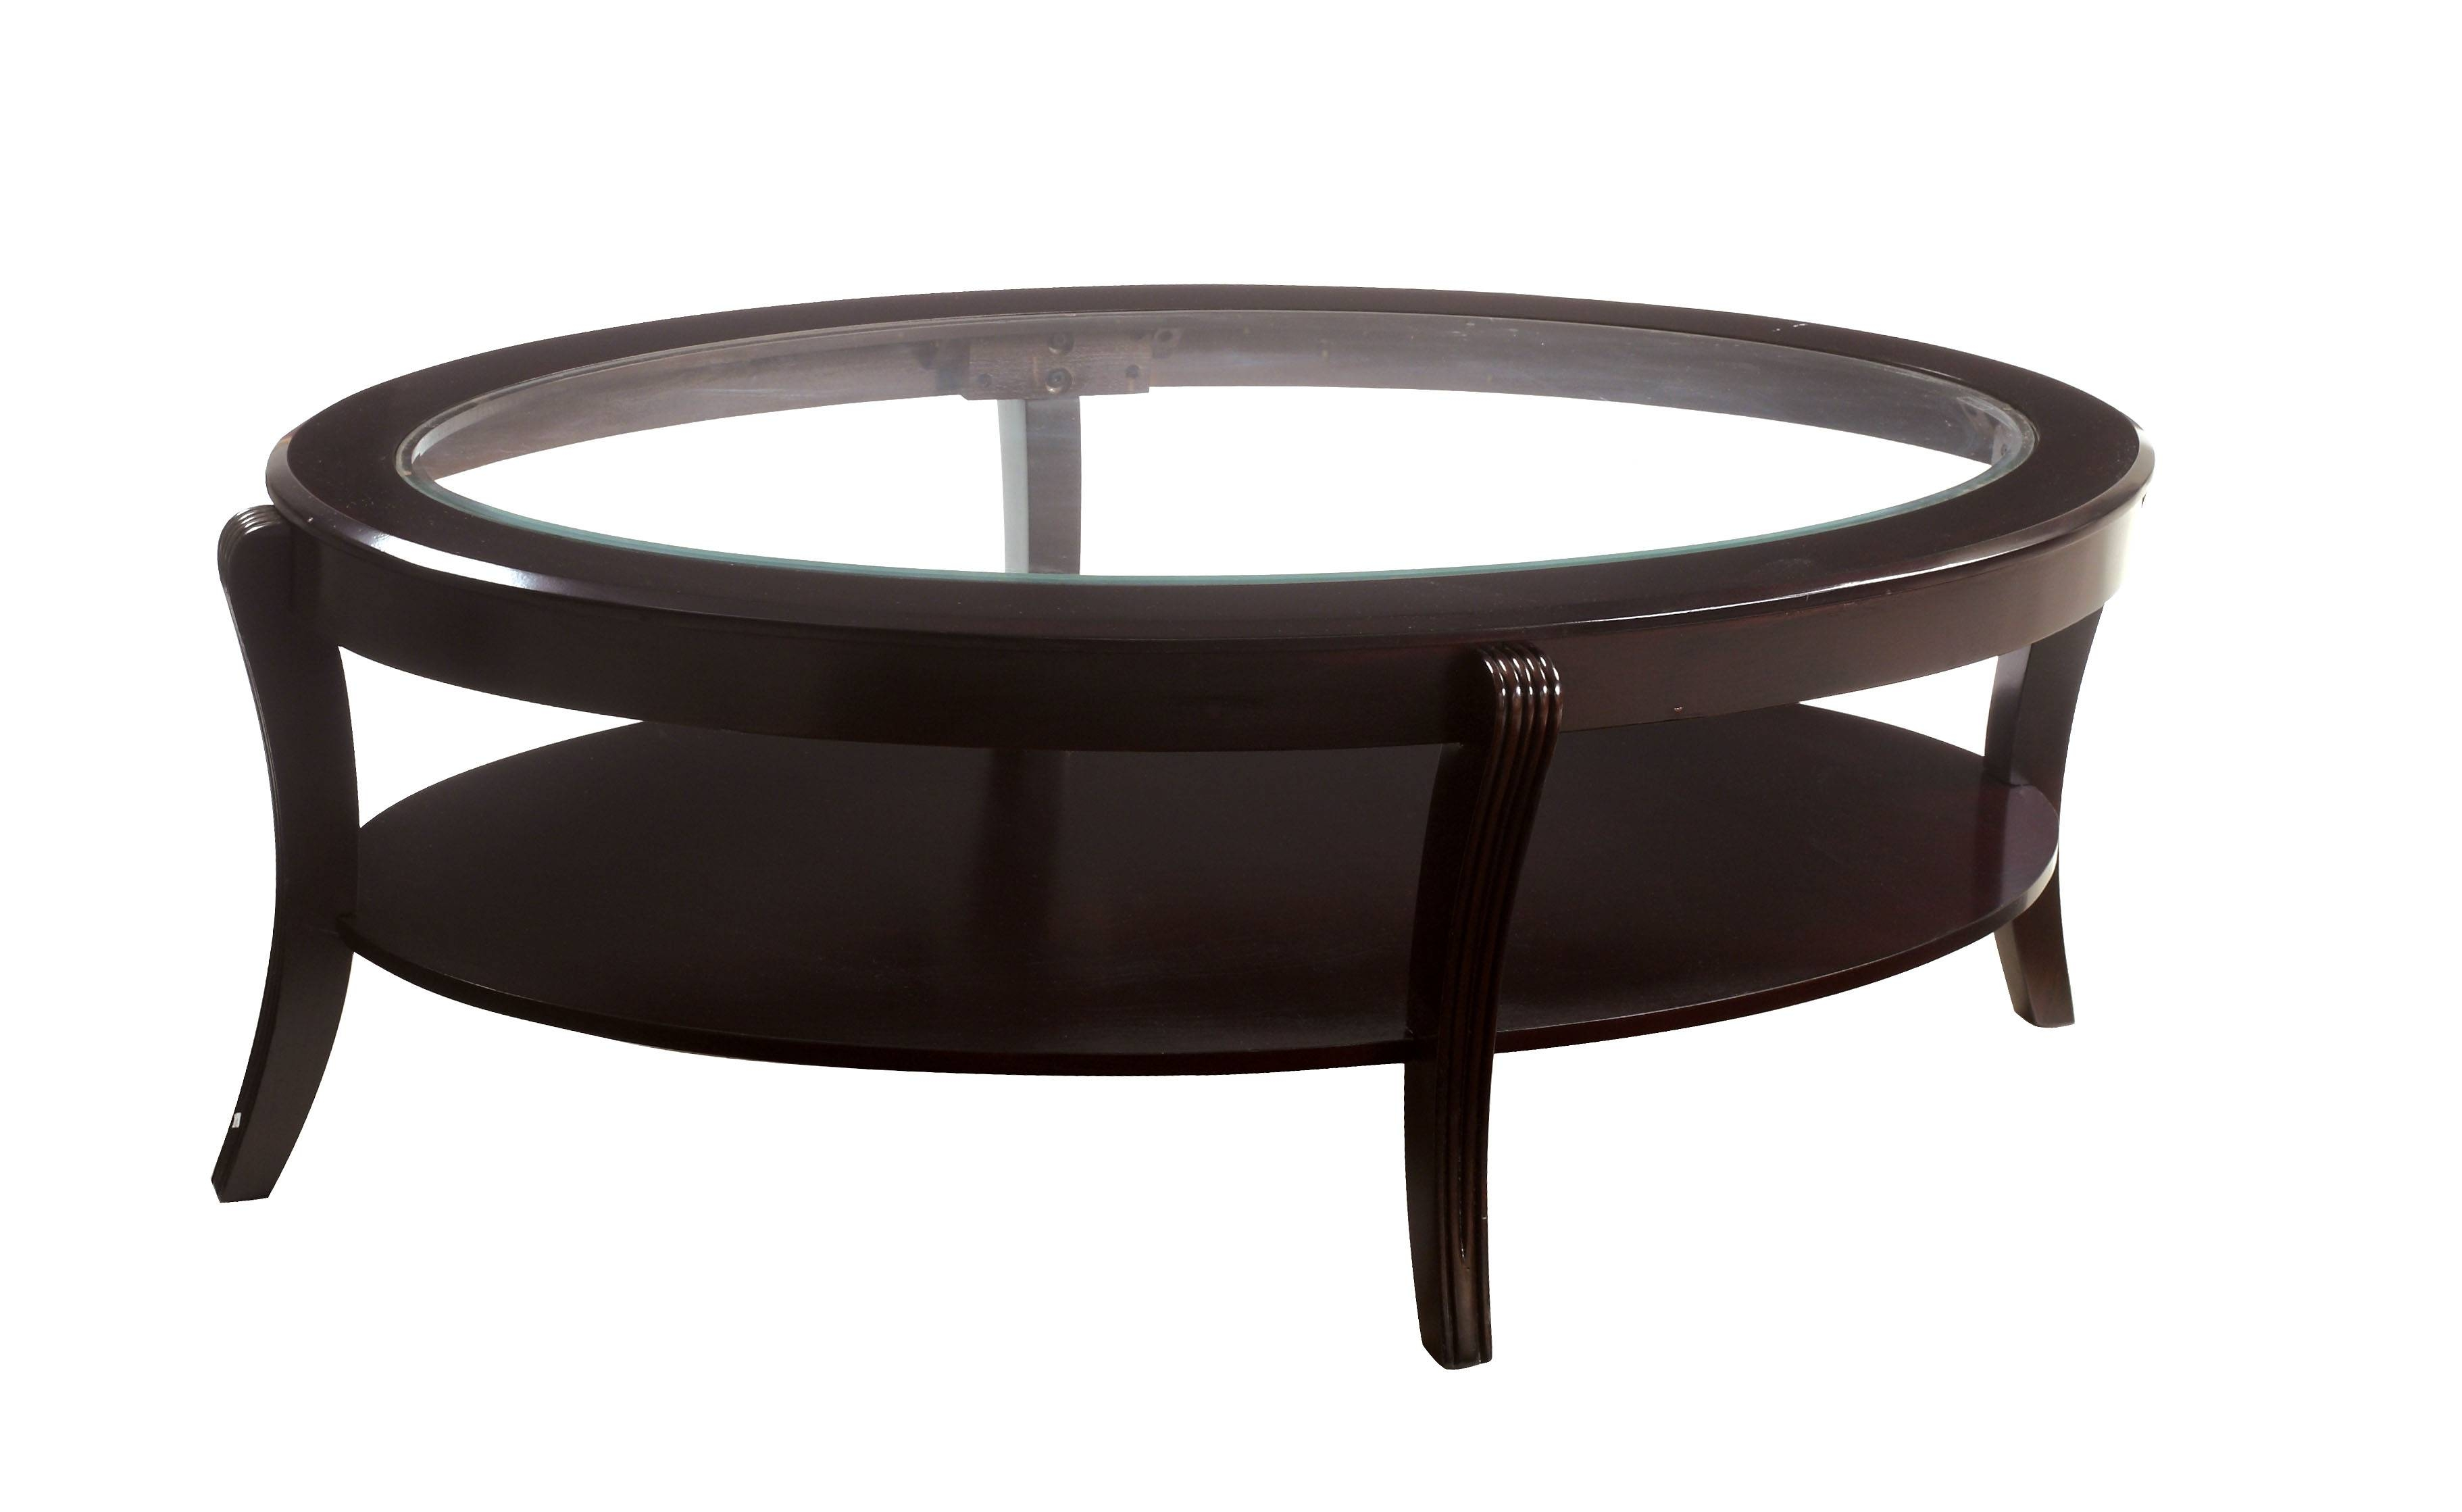 Black Oval Coffee Table | Coffee Tables Decoration with regard to Oval Black Glass Coffee Tables (Image 7 of 30)